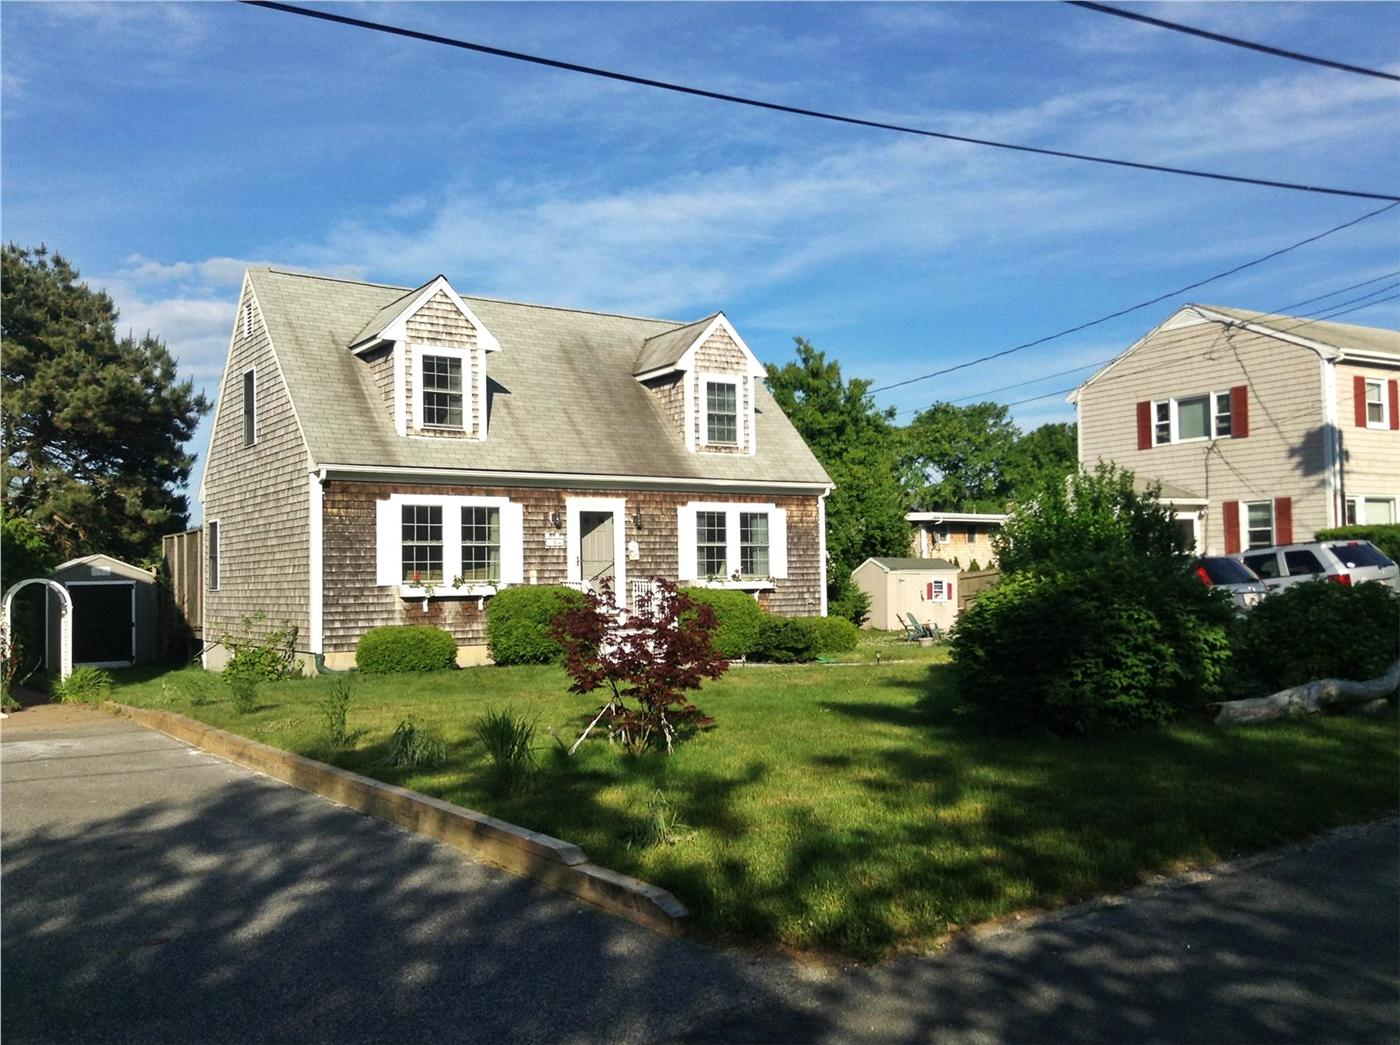 Sandwich Vacation Rental home in Cape Cod MA 02563 025